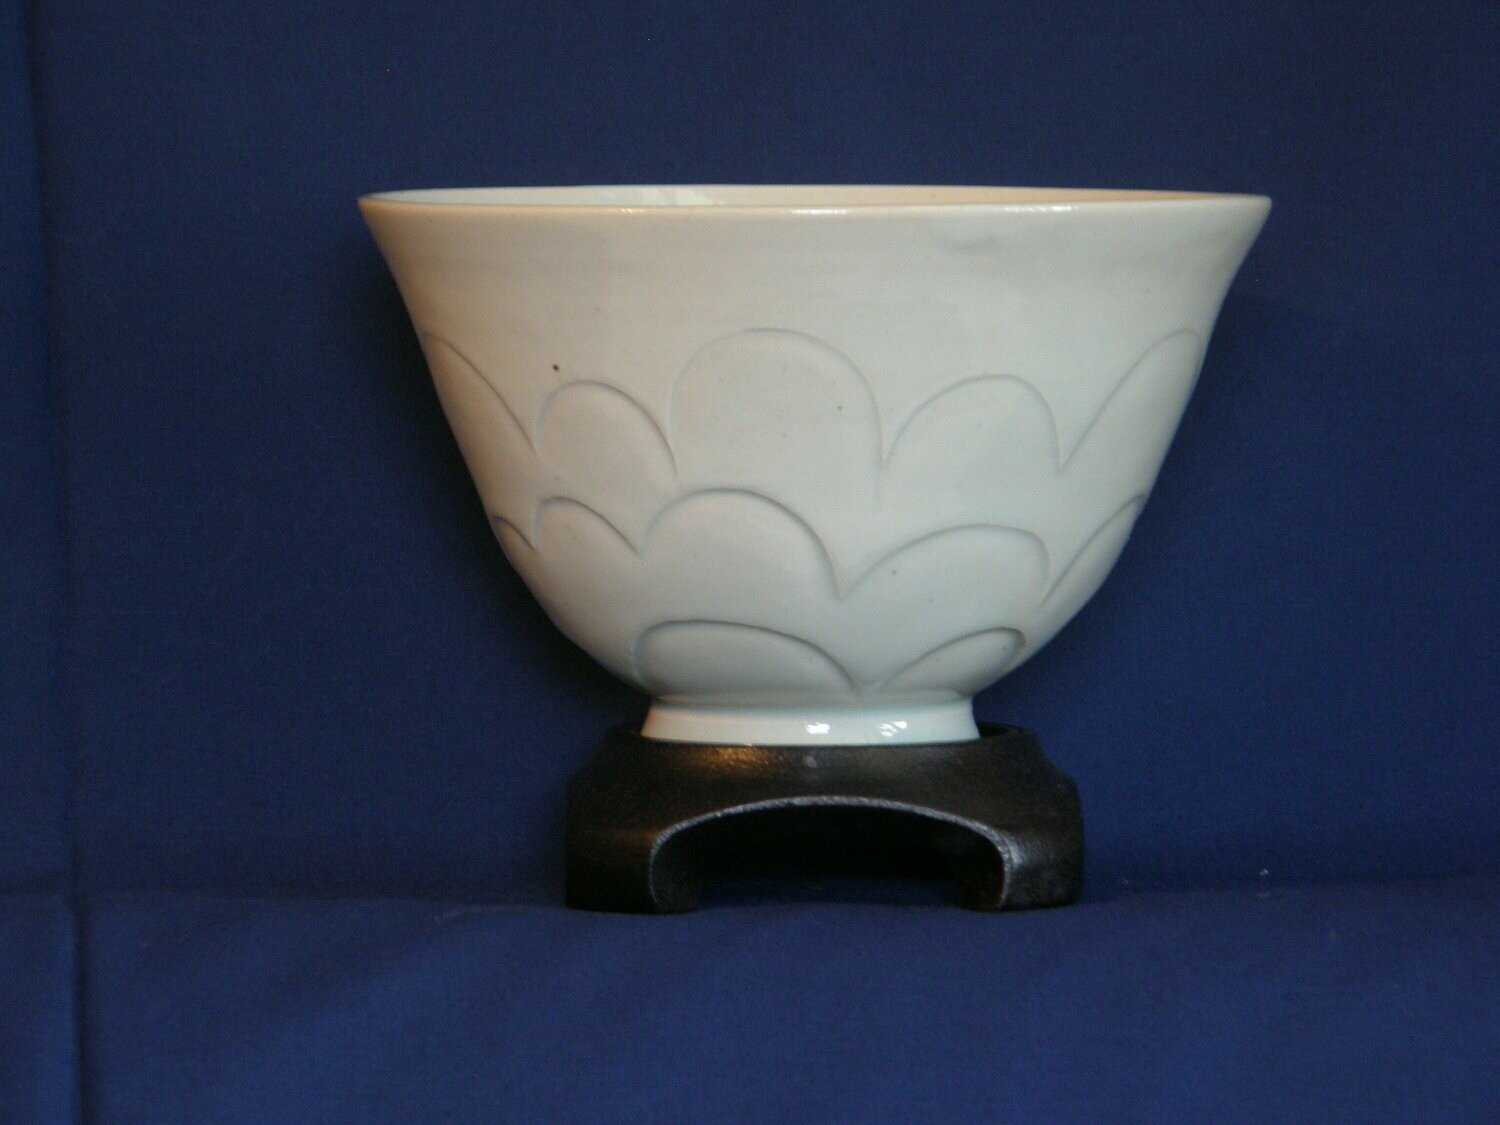 Bowl with Cloud Carving